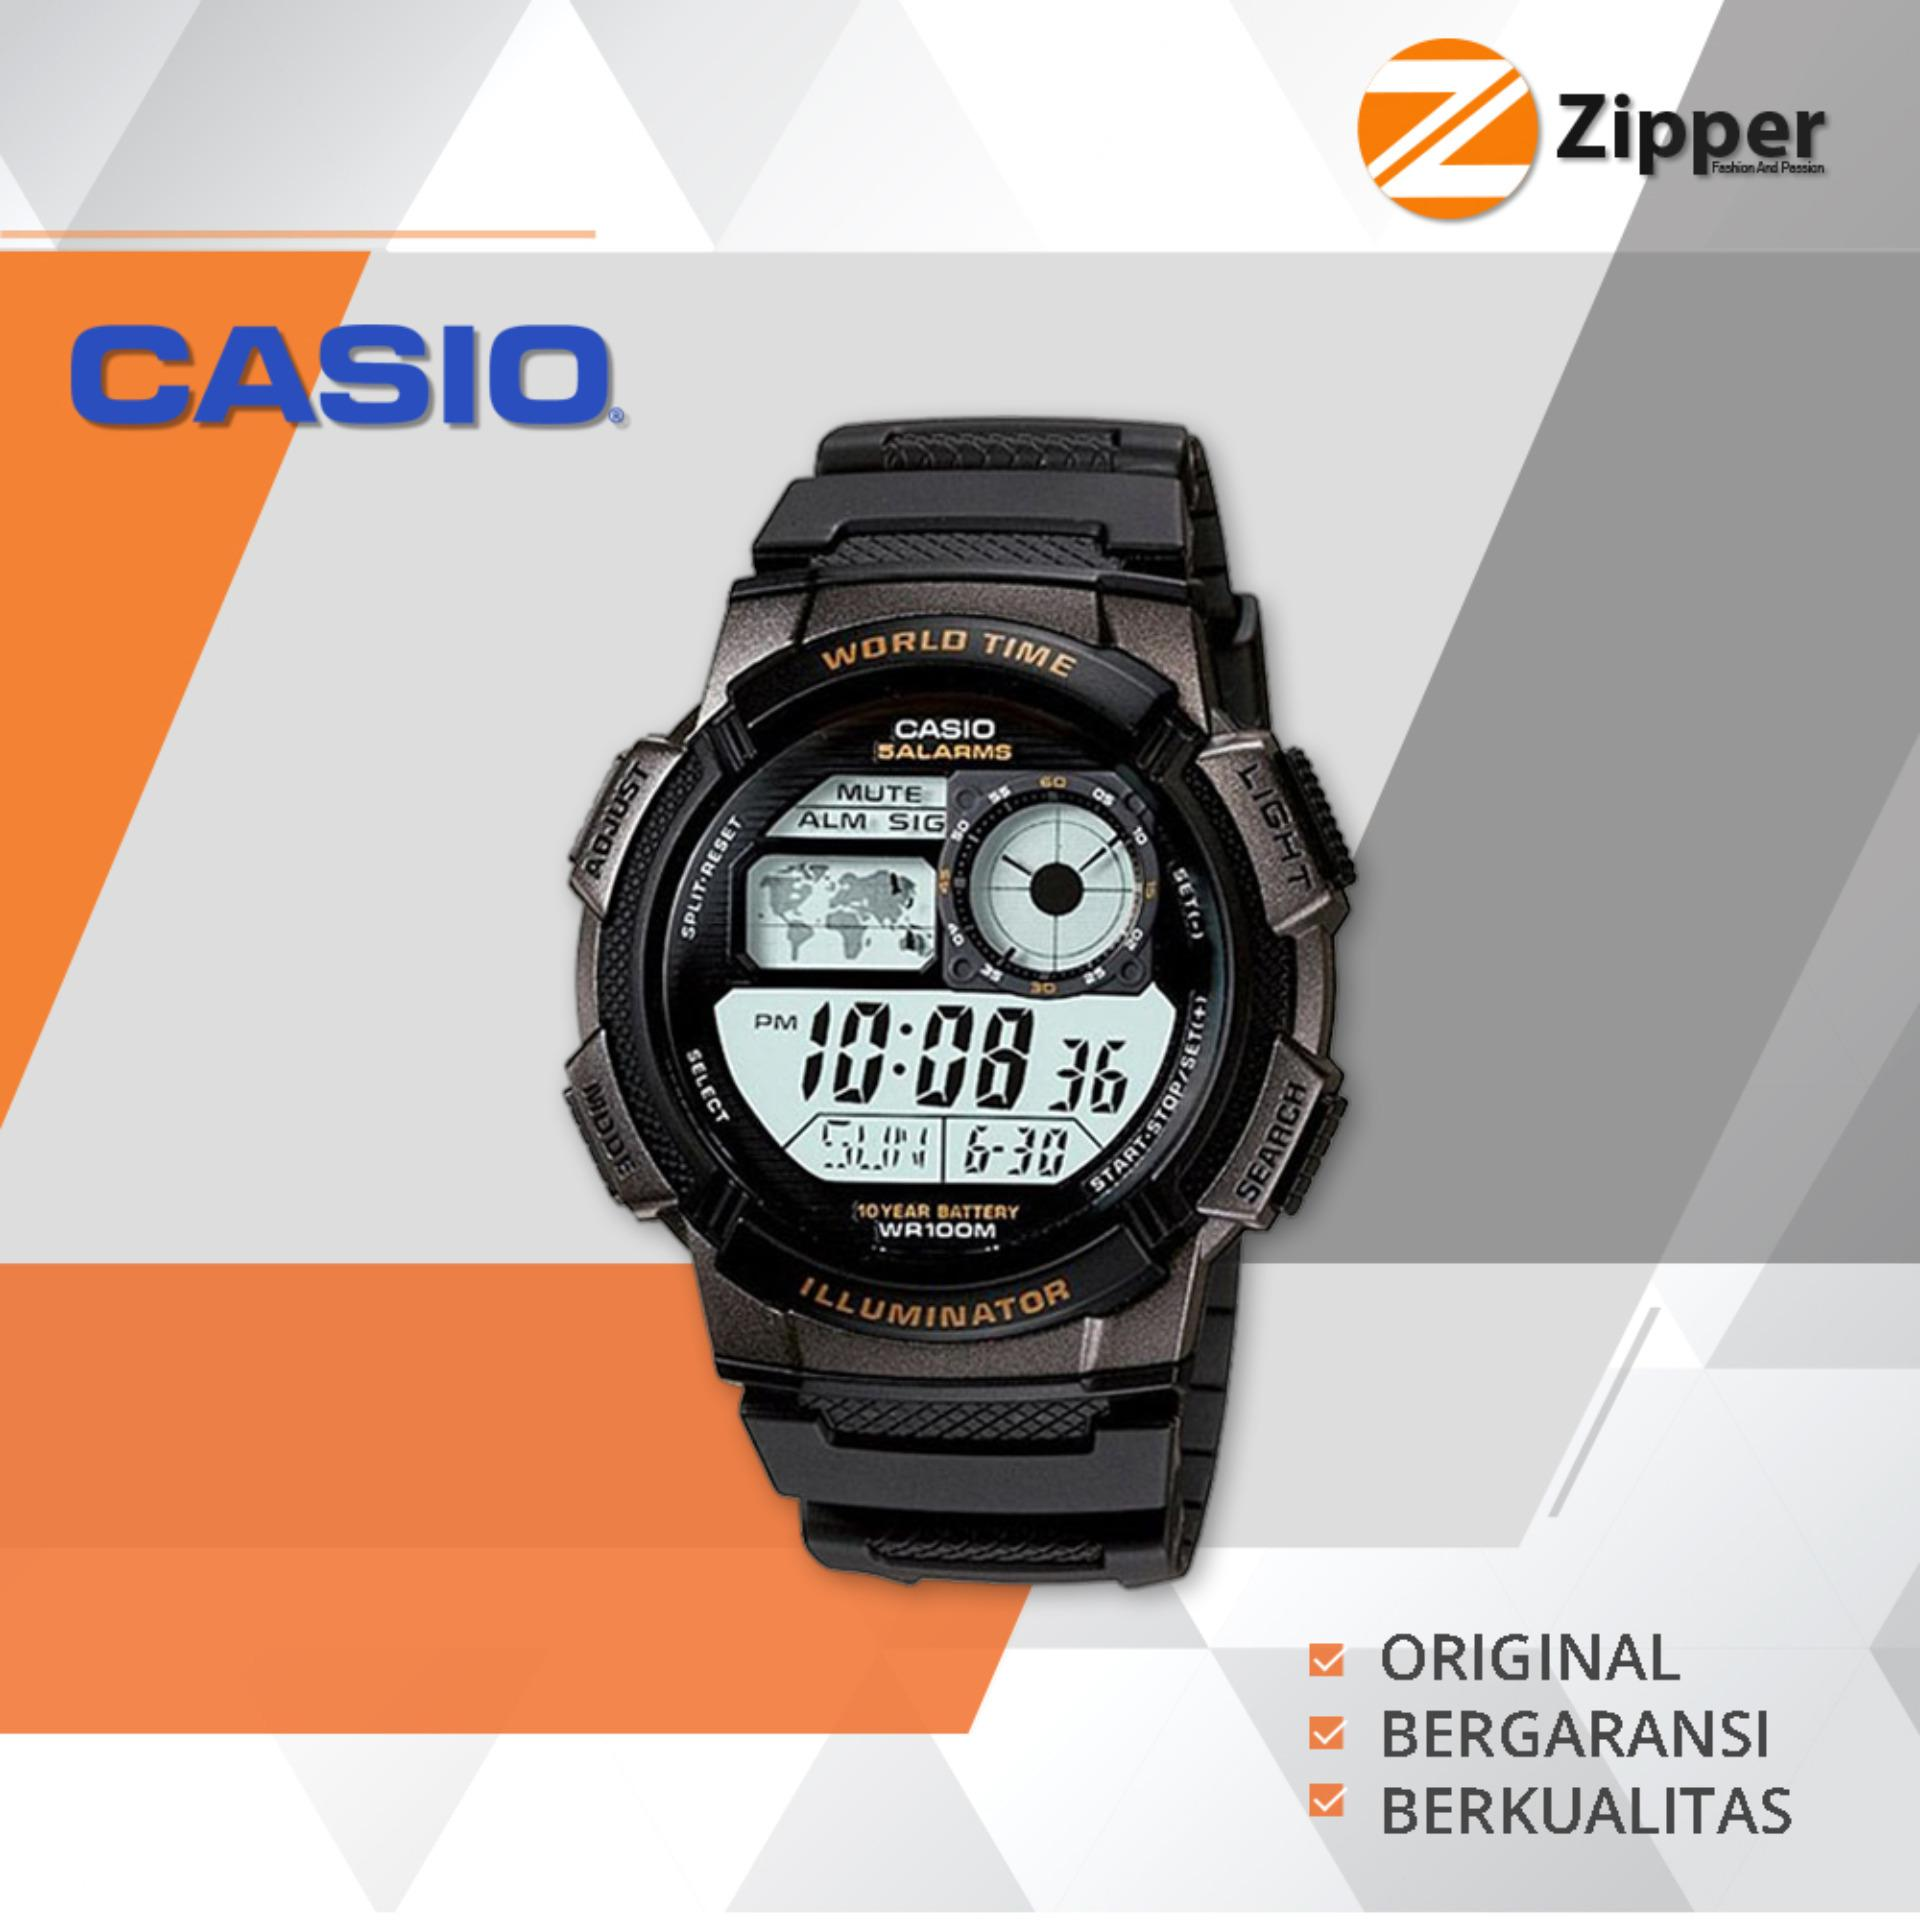 Promo Casio Illuminator Jam Tangan Digital Ae 1000W 1Avdf Youth Series Tali Karet Casio Terbaru